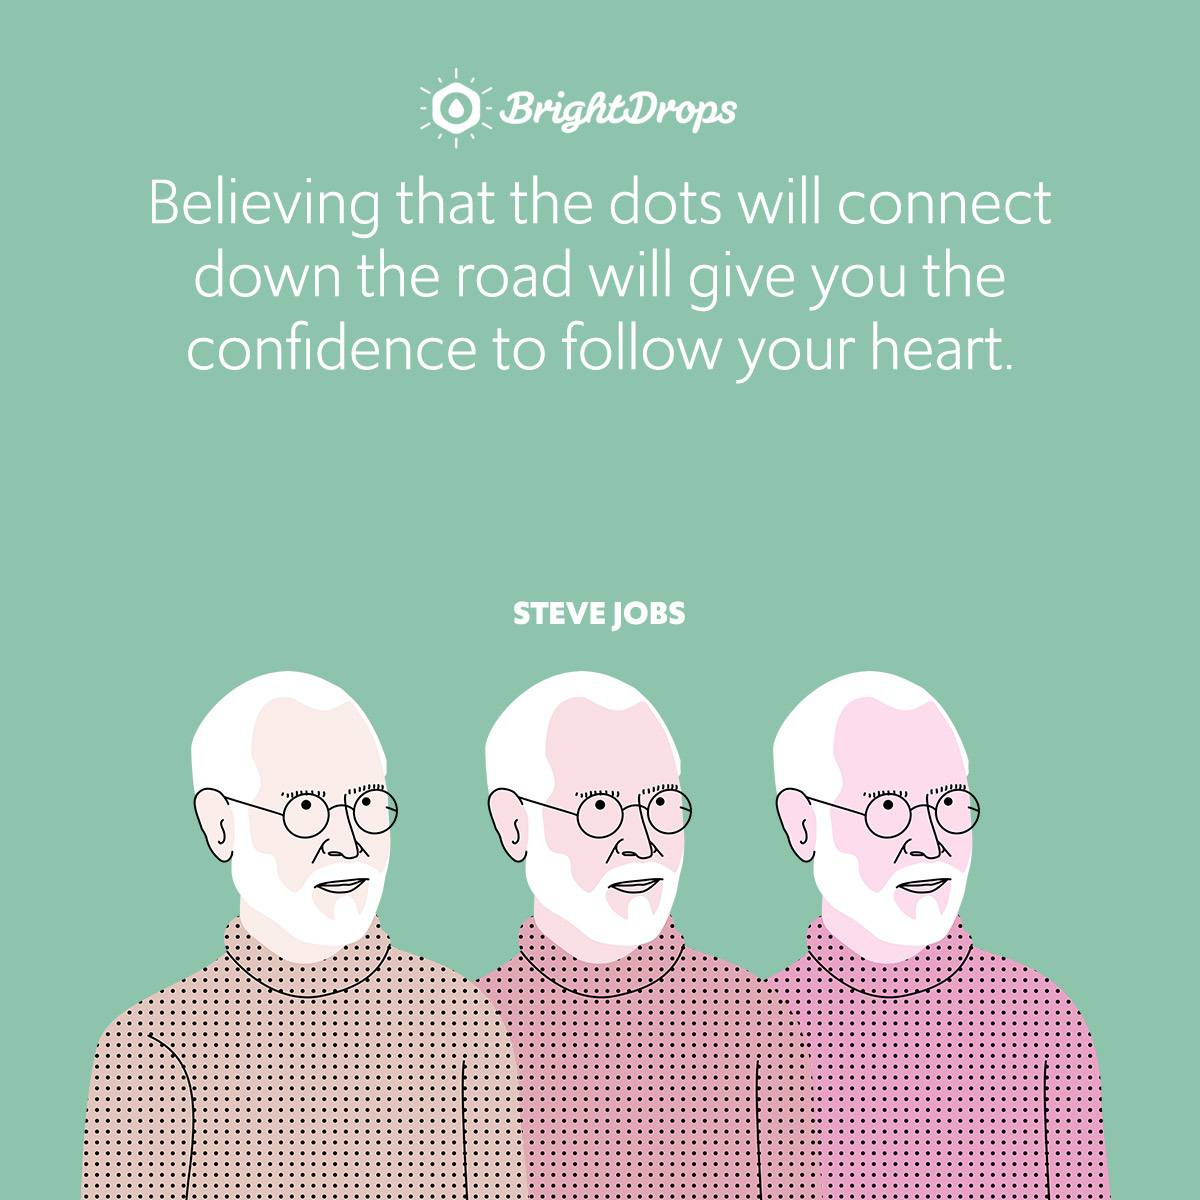 Believing that the dots will connect down the road will give you the confidence to follow your heart.